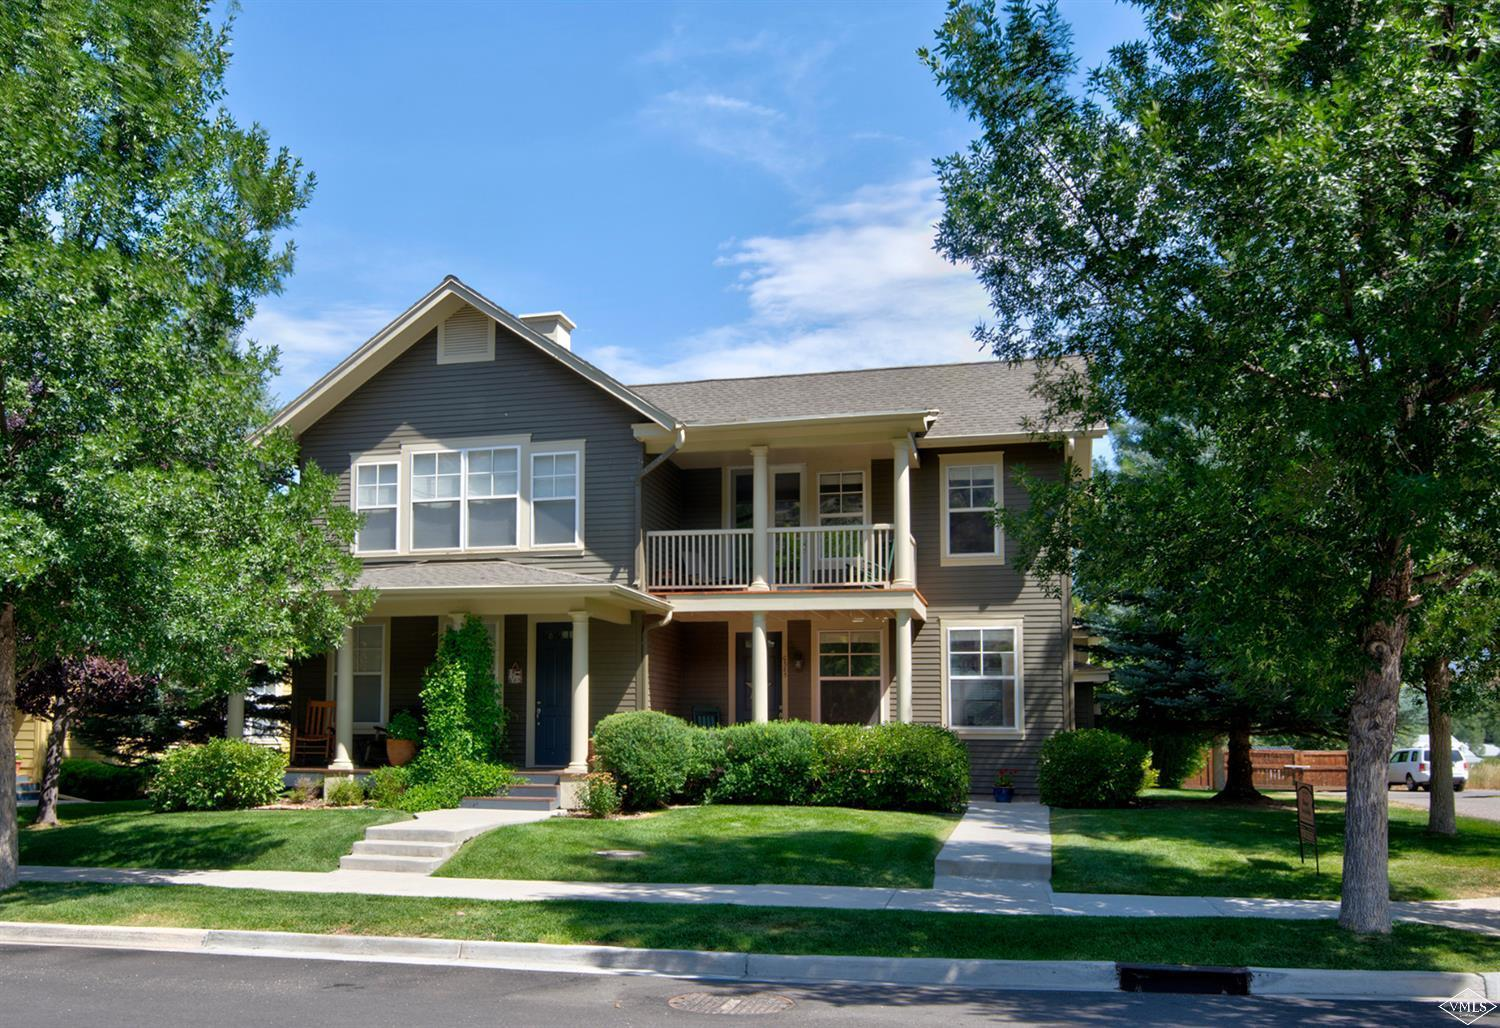 Enjoy the ultra convenience of this recently updated 4 bedroom home adjacent to dedicated open space. Step outside to the Eagle Ranch walking path, and only 2 blocks to the amenities of Eagle Ranch. New hardwood flooring, granite kitchen counter tops, fresh paint and carpet highlight a wonderful family home in a modern and beautiful, quintessential Colorado neighborhood. 1 car garage and secondary living area downstairs. Exteriors and outdoor spaces maintained by the HOA.